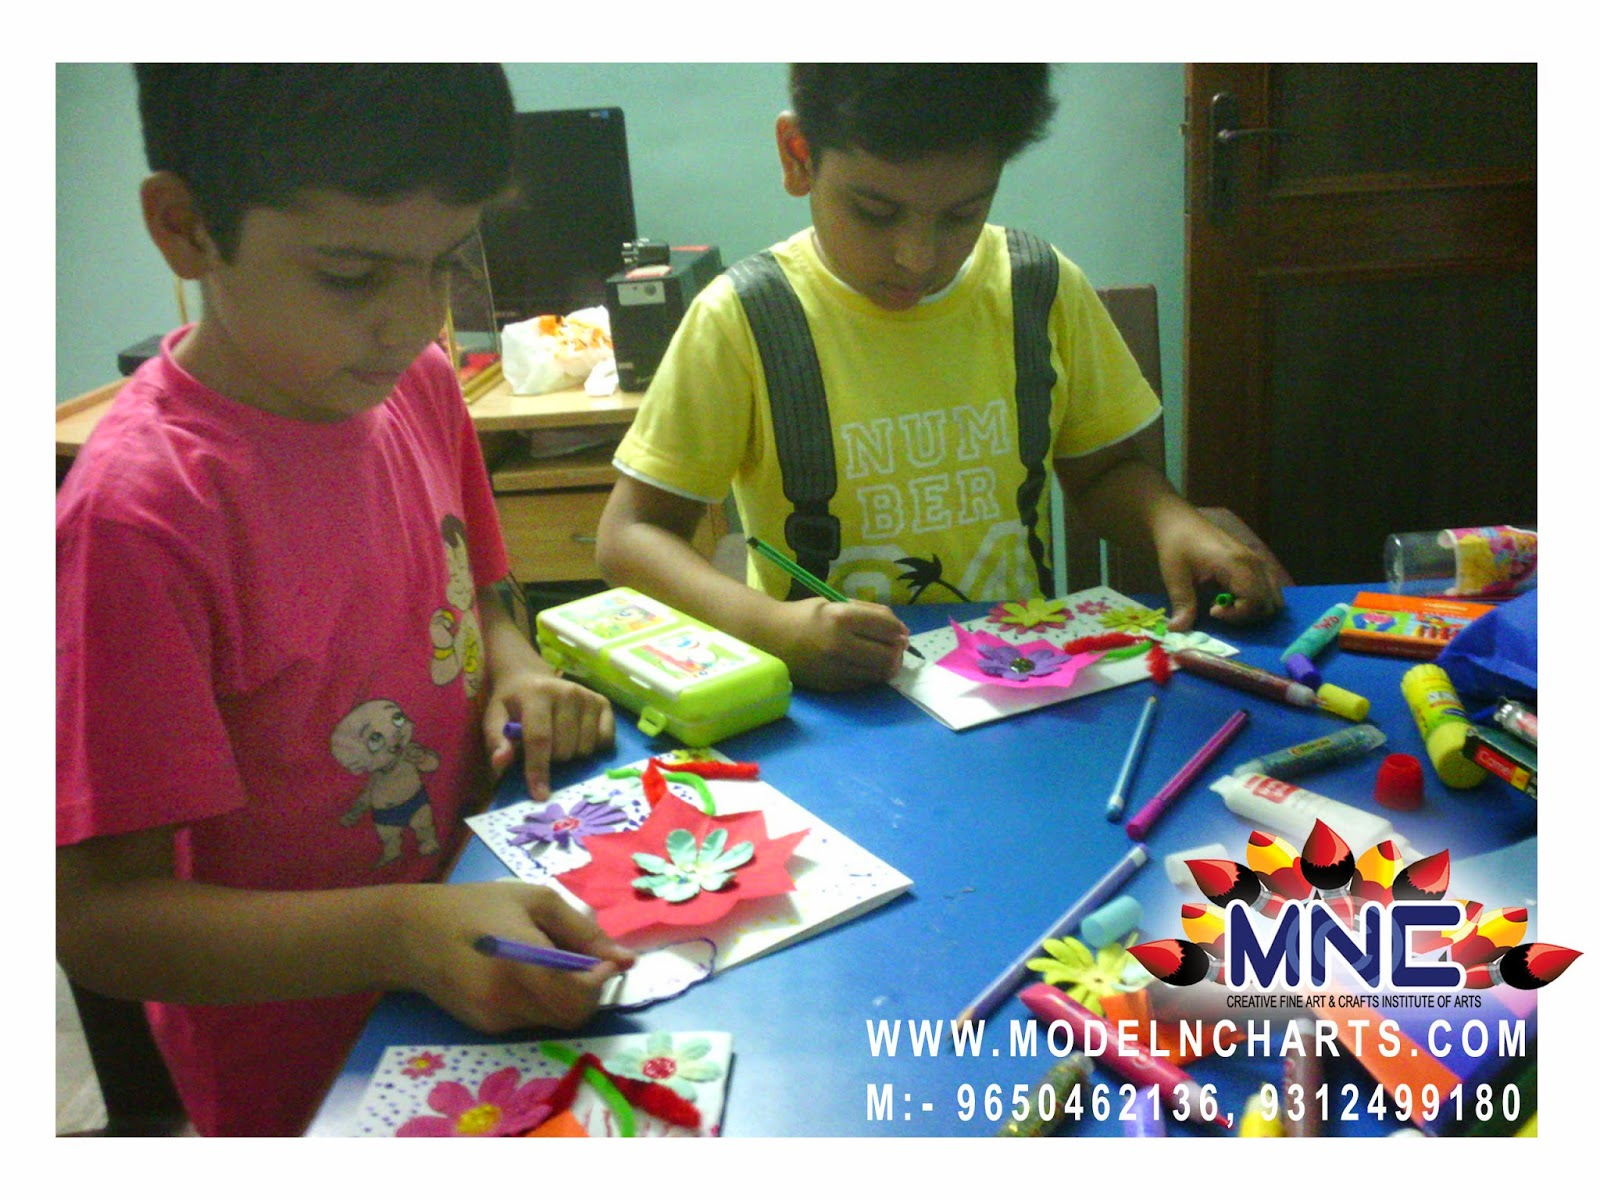 Home tuition home classes home tutor for kids adults for Crafts classes for adults